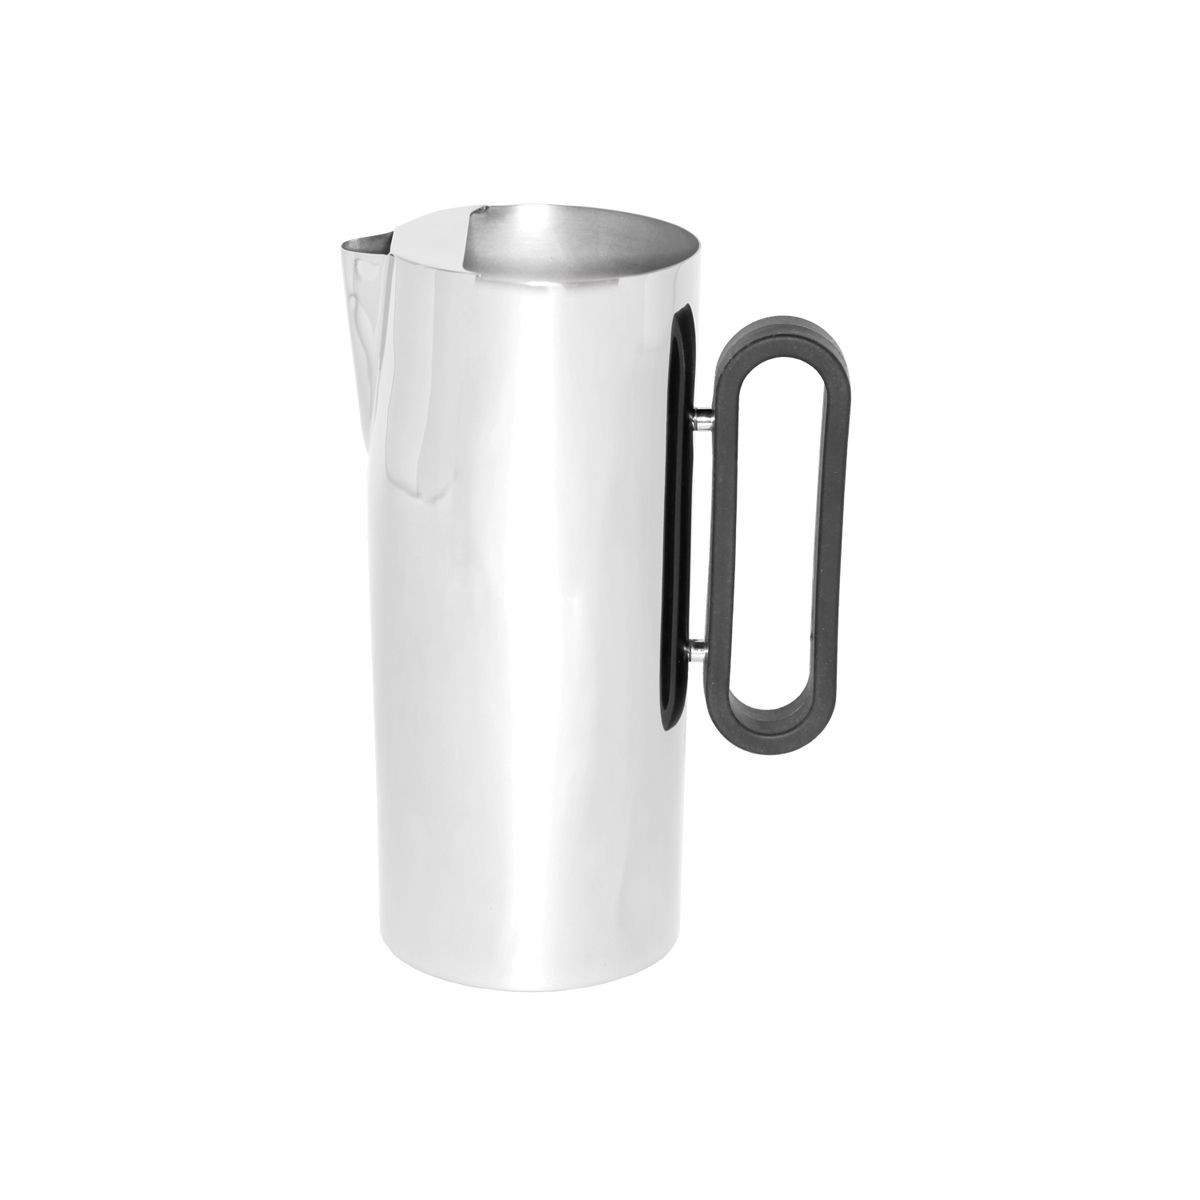 Service Ideas SM-23 SteelForme Stainless Steel Water Pitcher with Ice Guard, 64 oz.